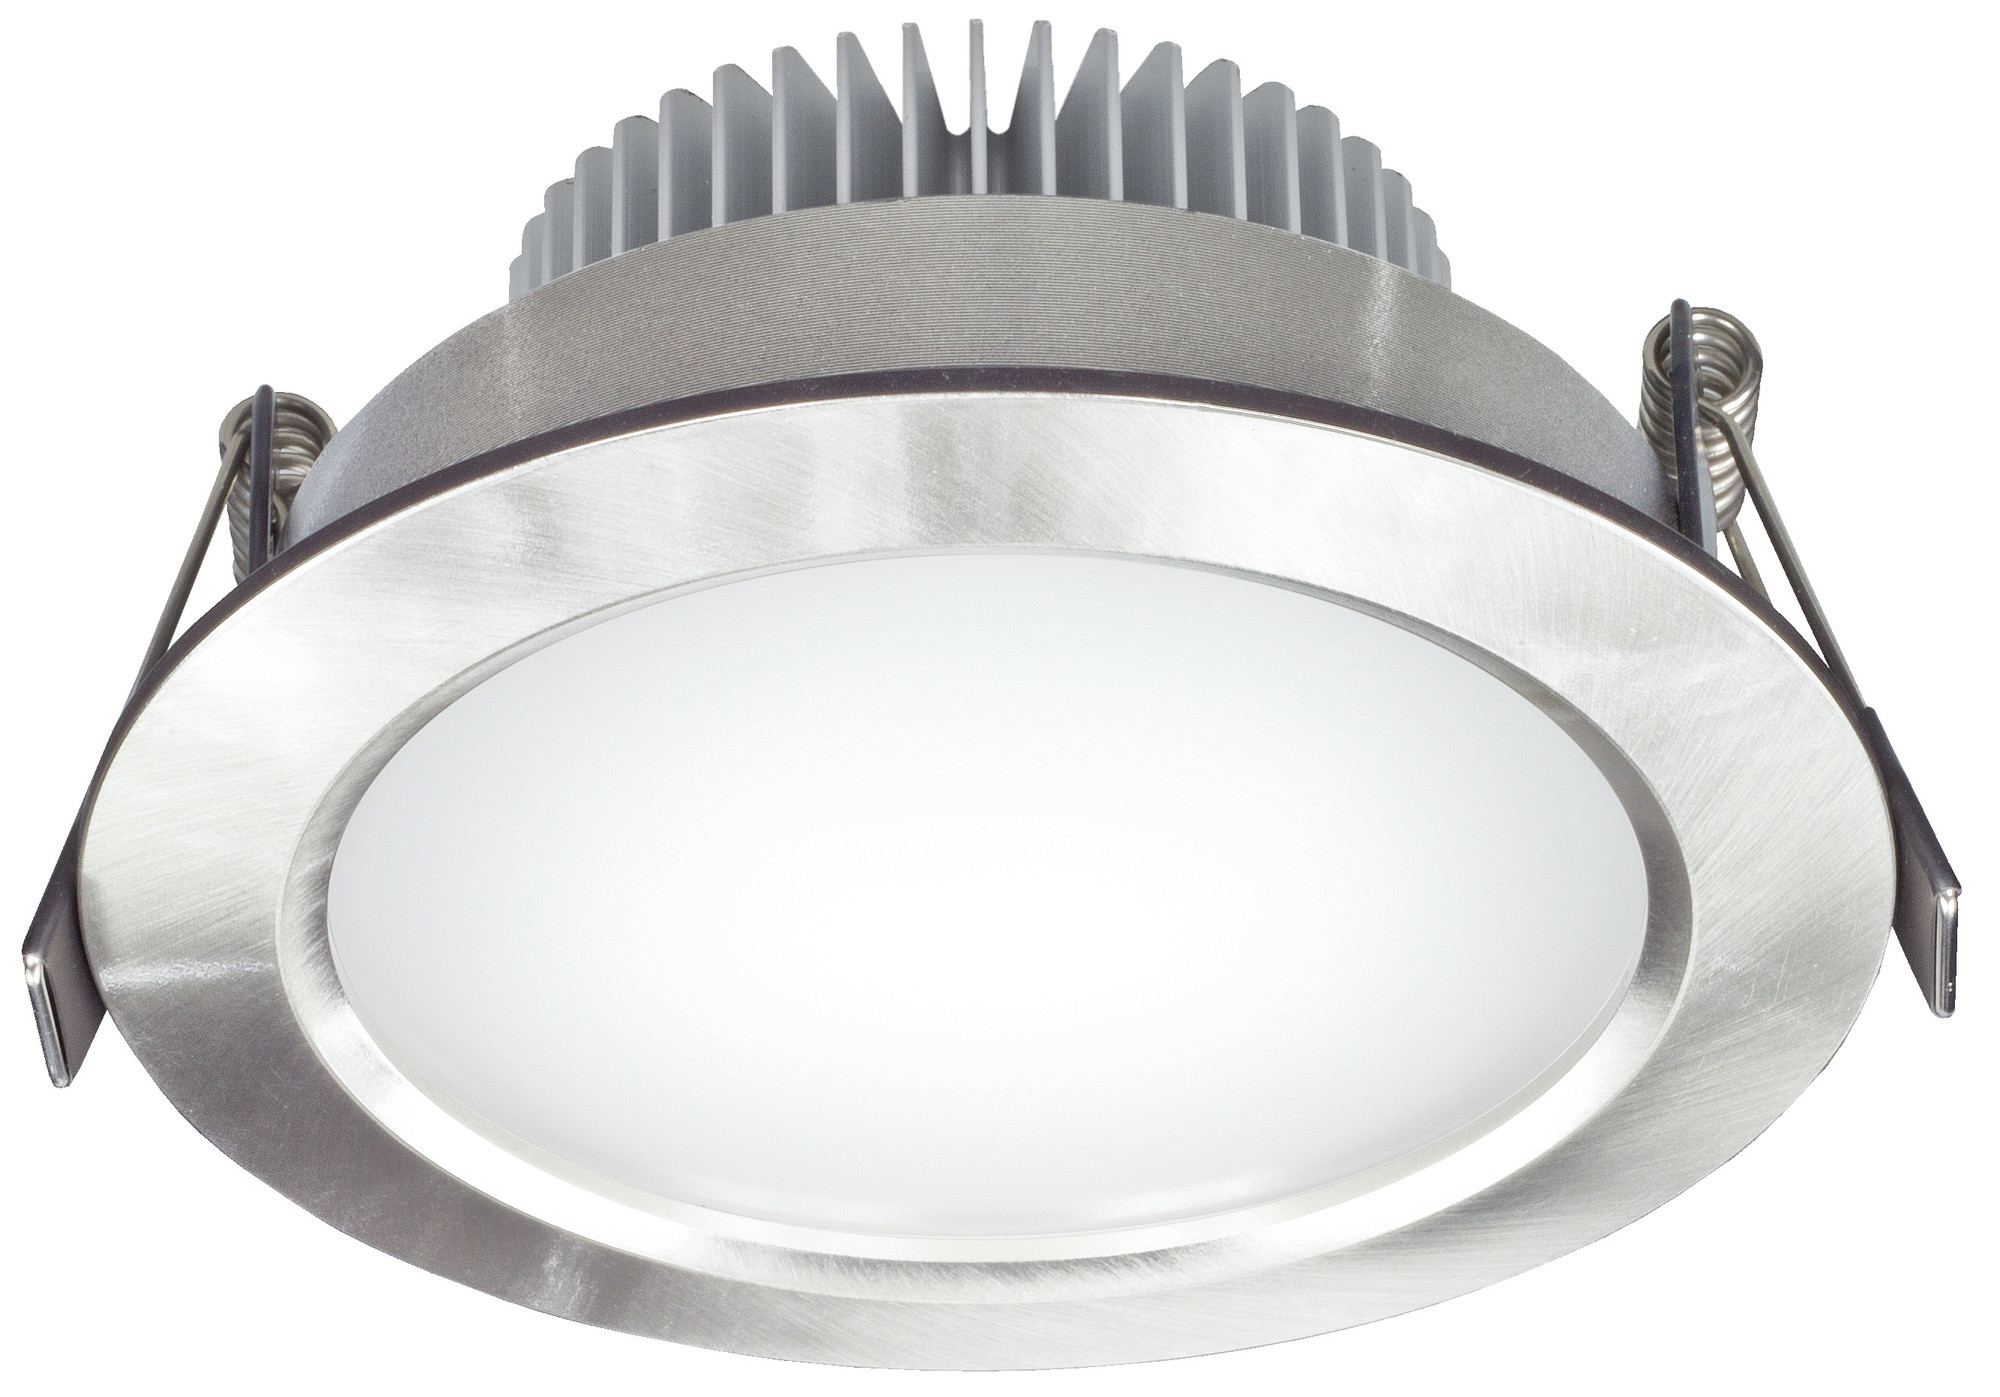 11w Energiesparlampe Lumen New Umbra 11w Led Downlight 780 800 Lumens Ebay